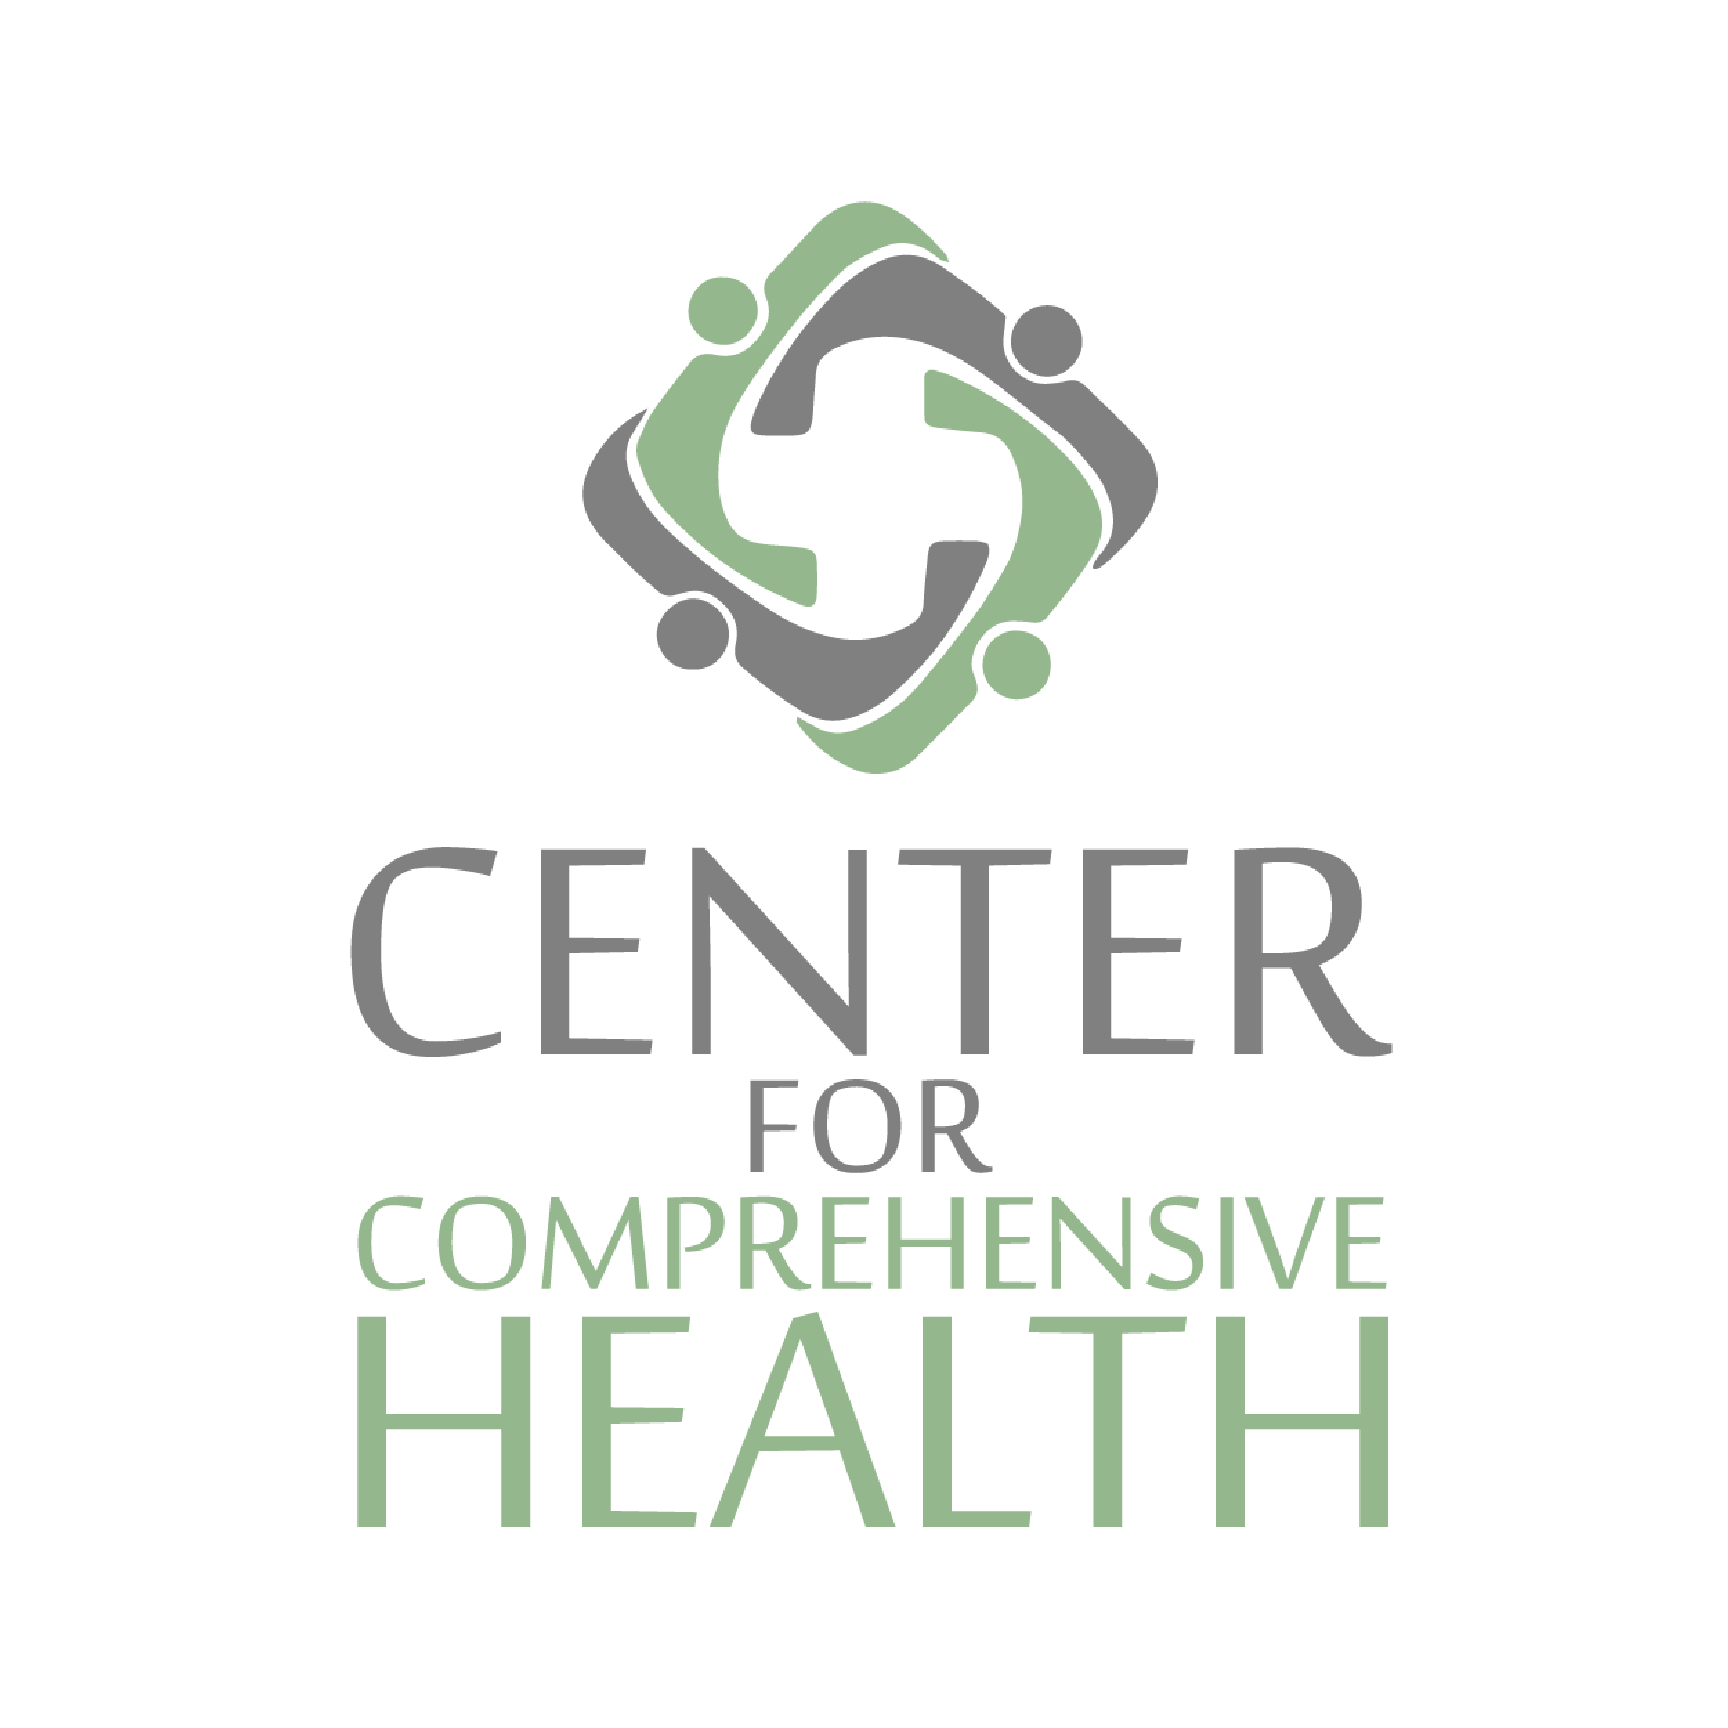 Center for Comprehensive Health